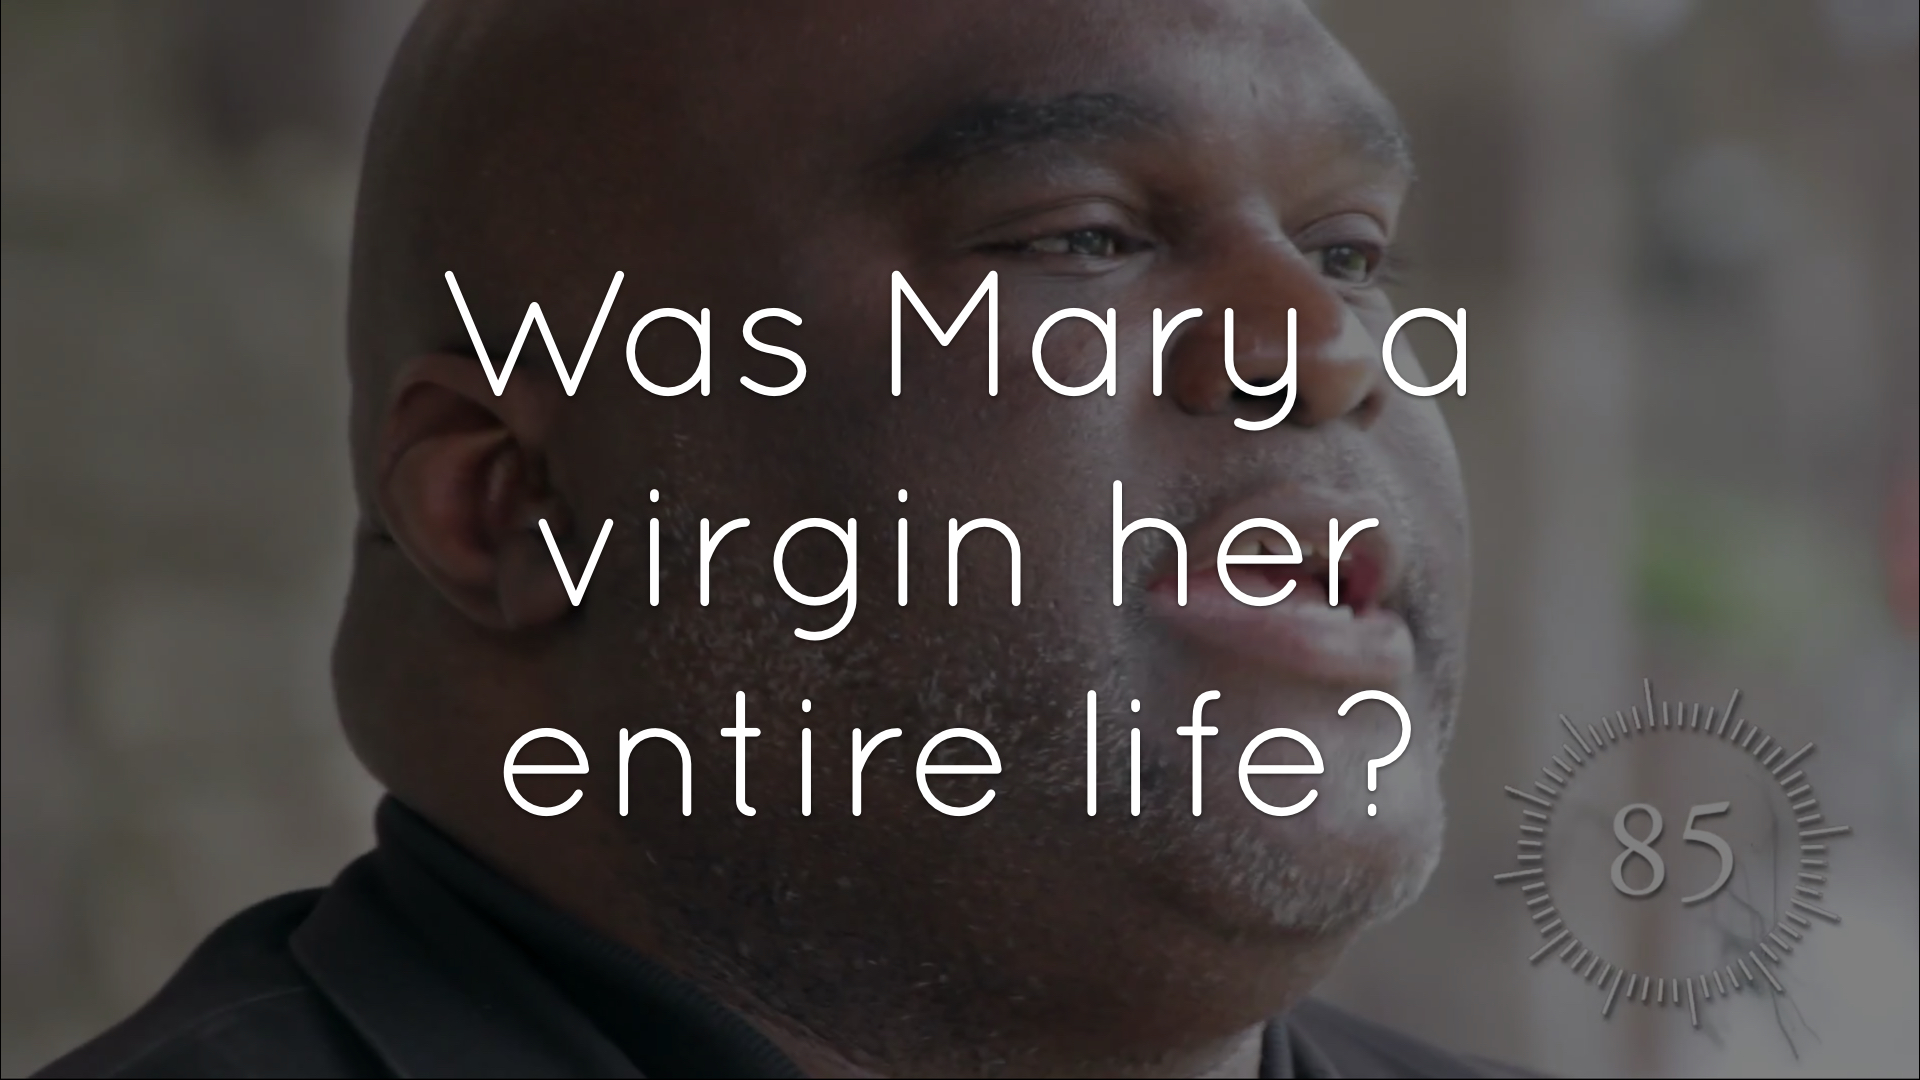 Was Mary a perpetual virgin?